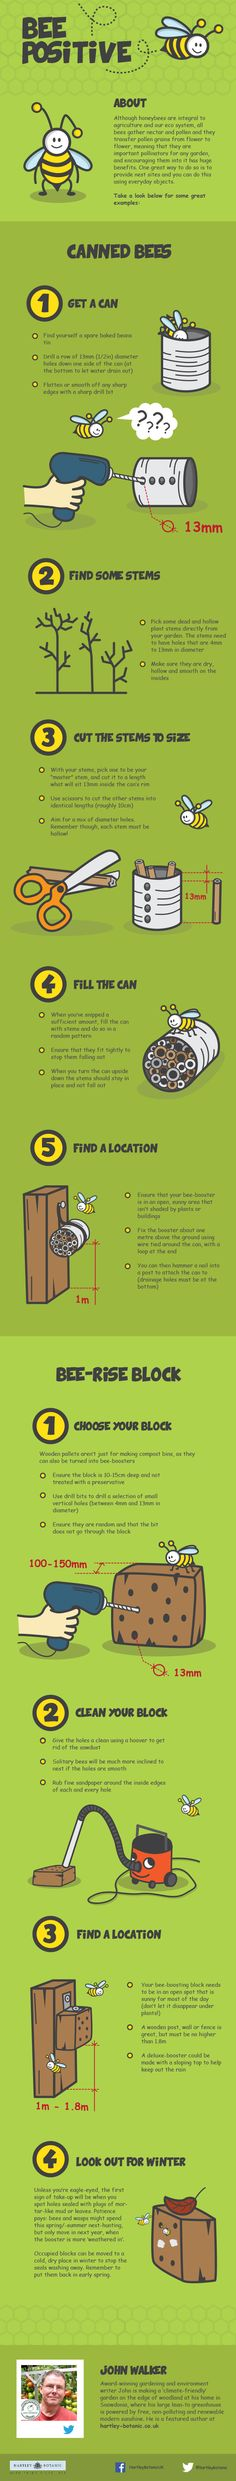 Home-made bee hotels  #infographic #Bees #DIY #Honey